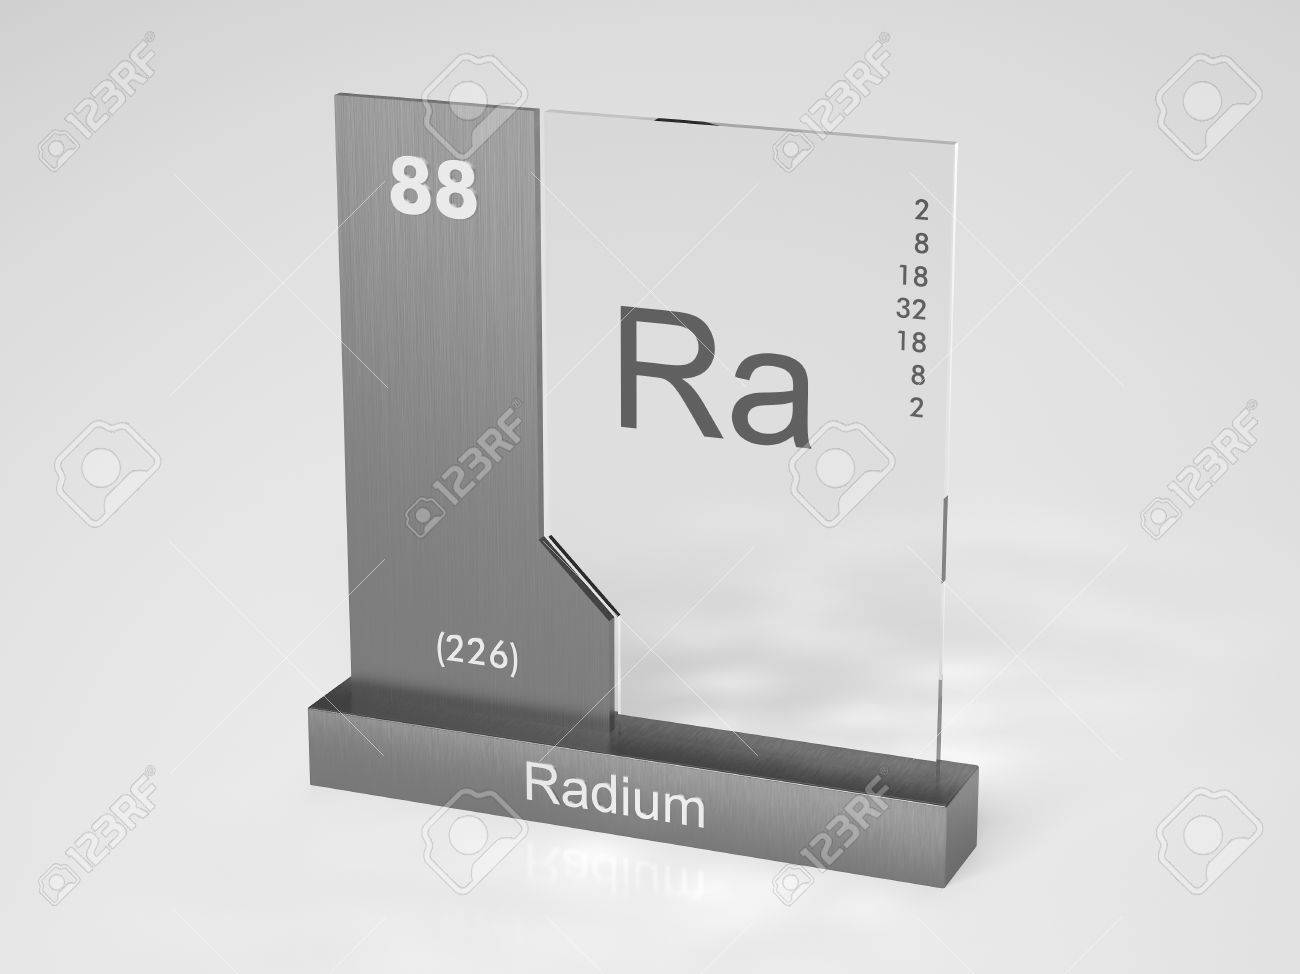 Radium - symbol Ra - chemical element of the periodic table Stock Photo - 11255901